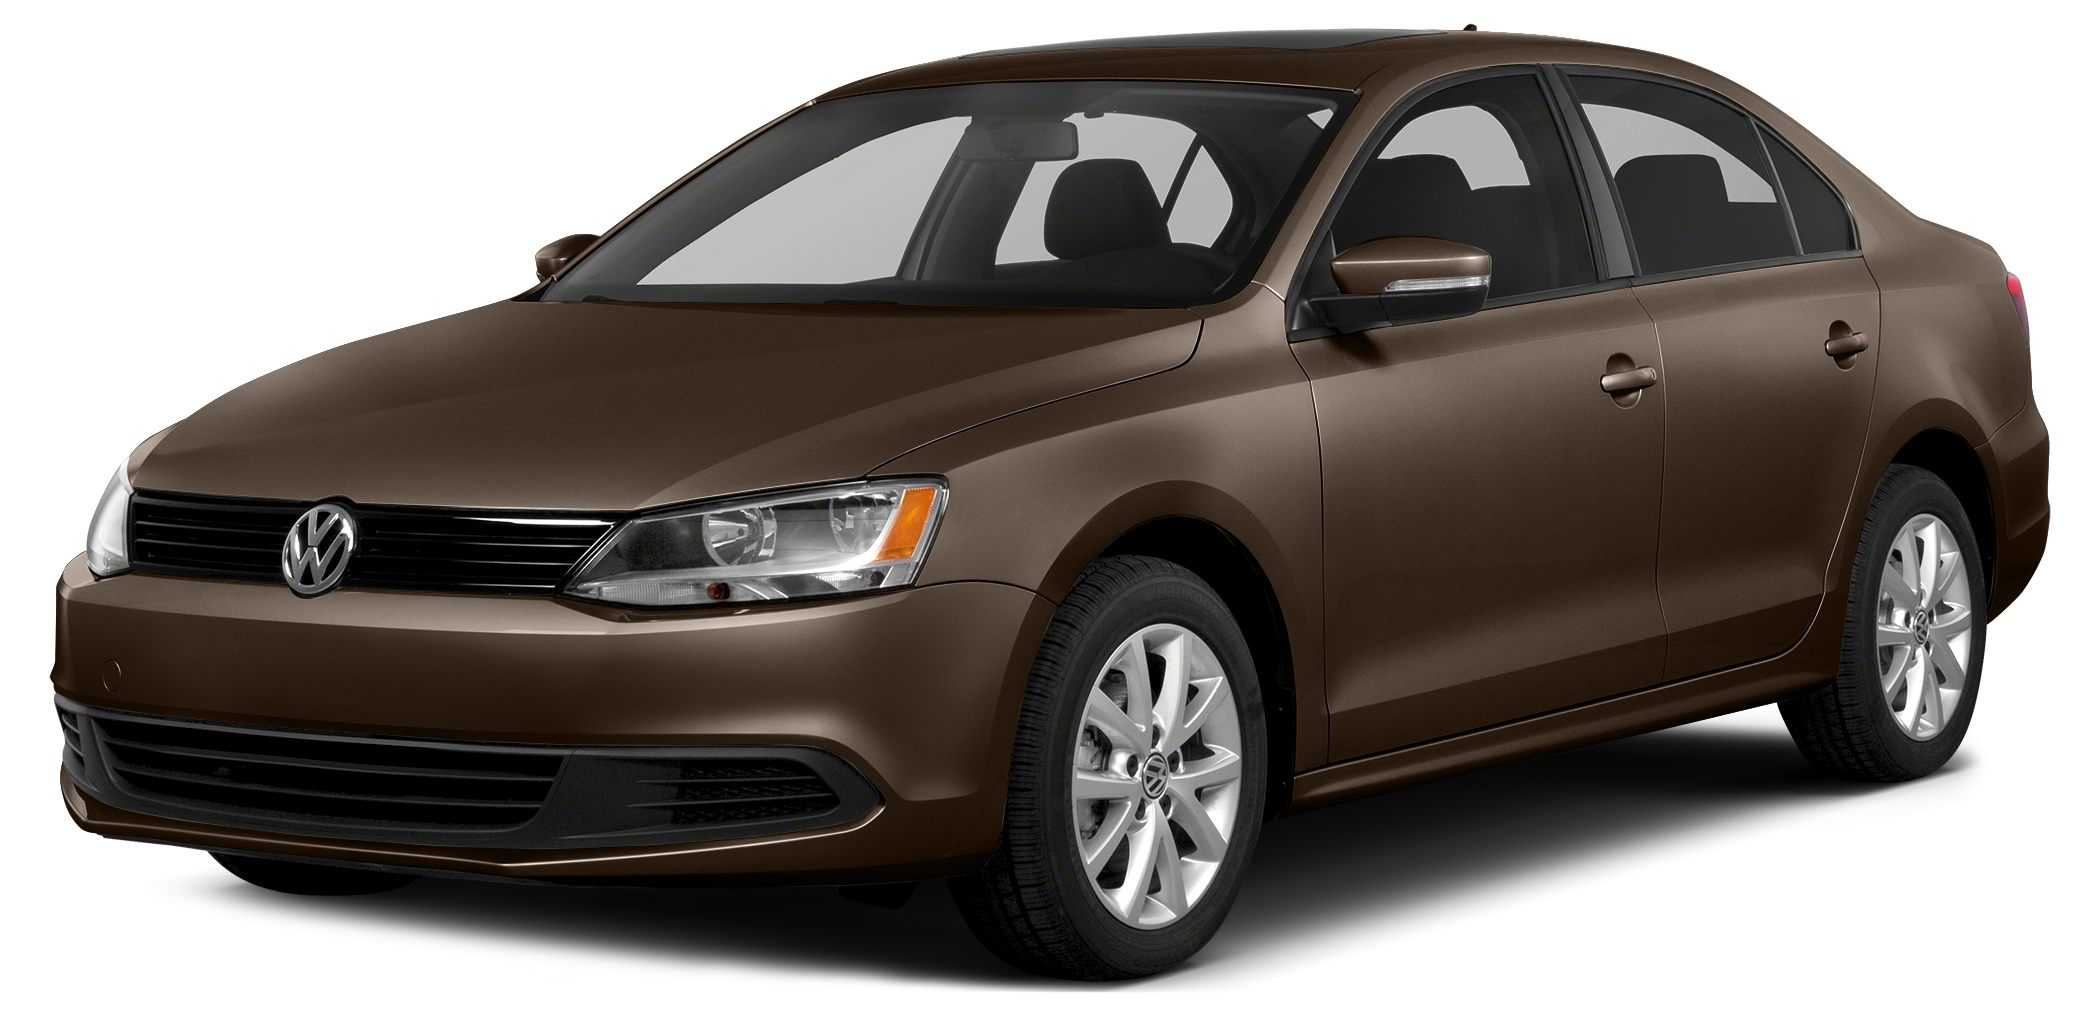 2014 Volkswagen Jetta 18T SE w Connectivity Miles 32296Color Brown Stock T2986 VIN 3VWB17A